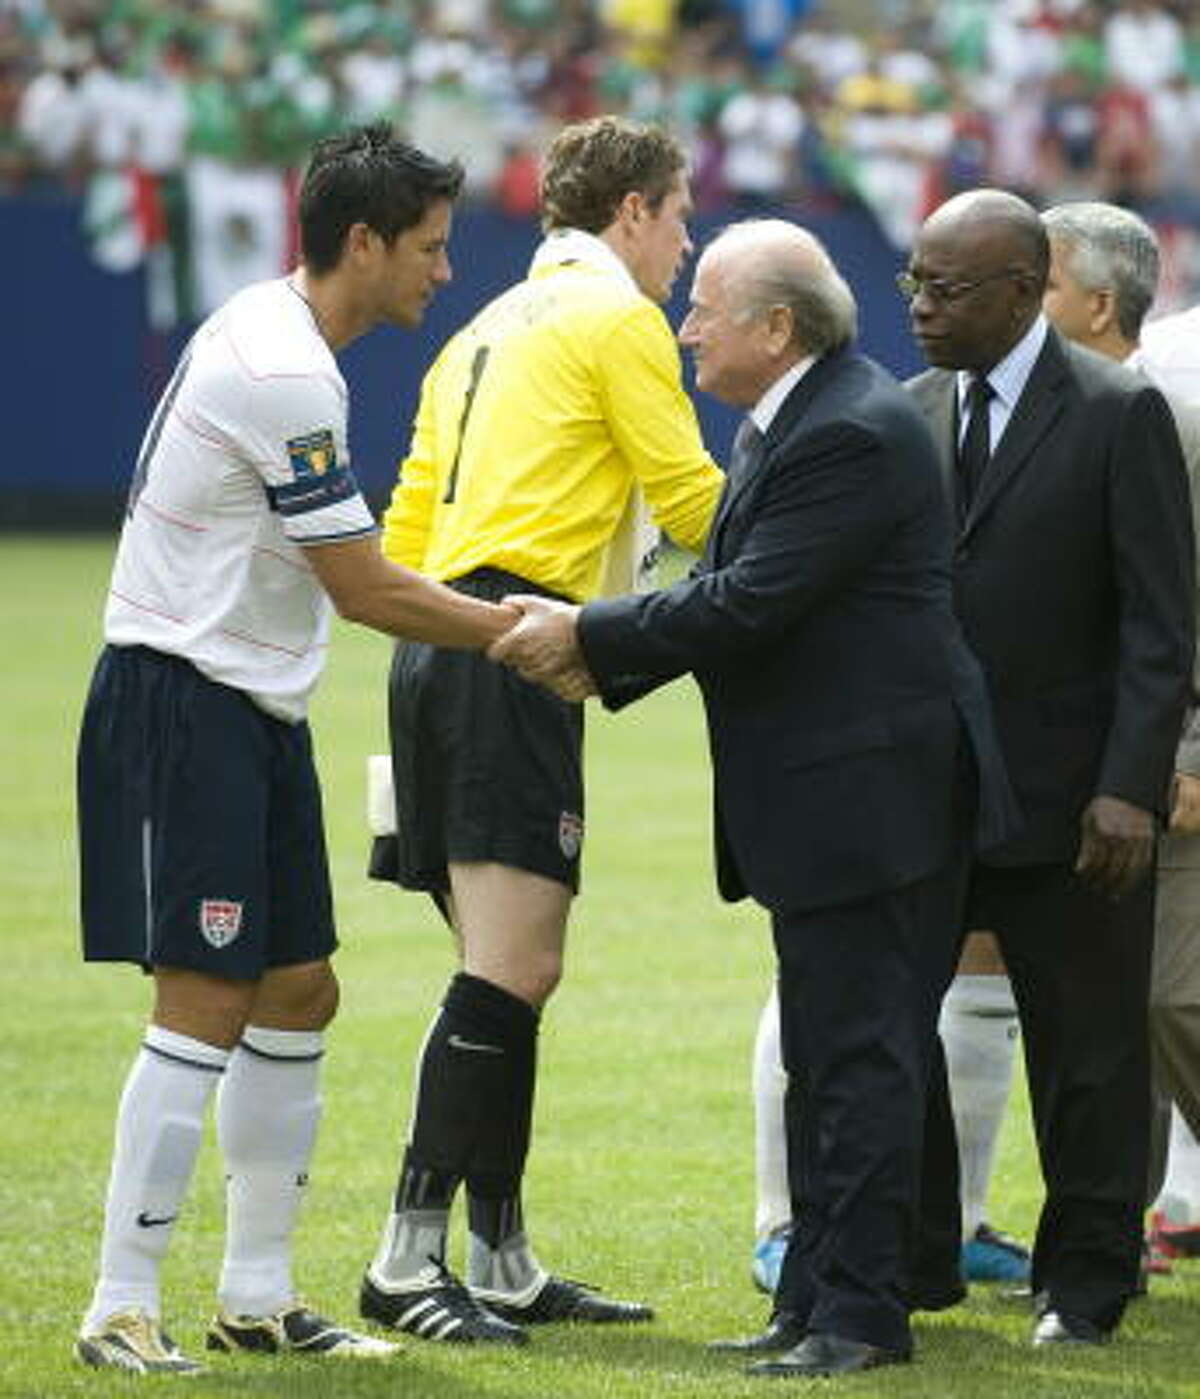 FIFA President Joseph Blatter, third from the left, greets players before the finals of the CONCACAF Gold Cup soccer tournament.